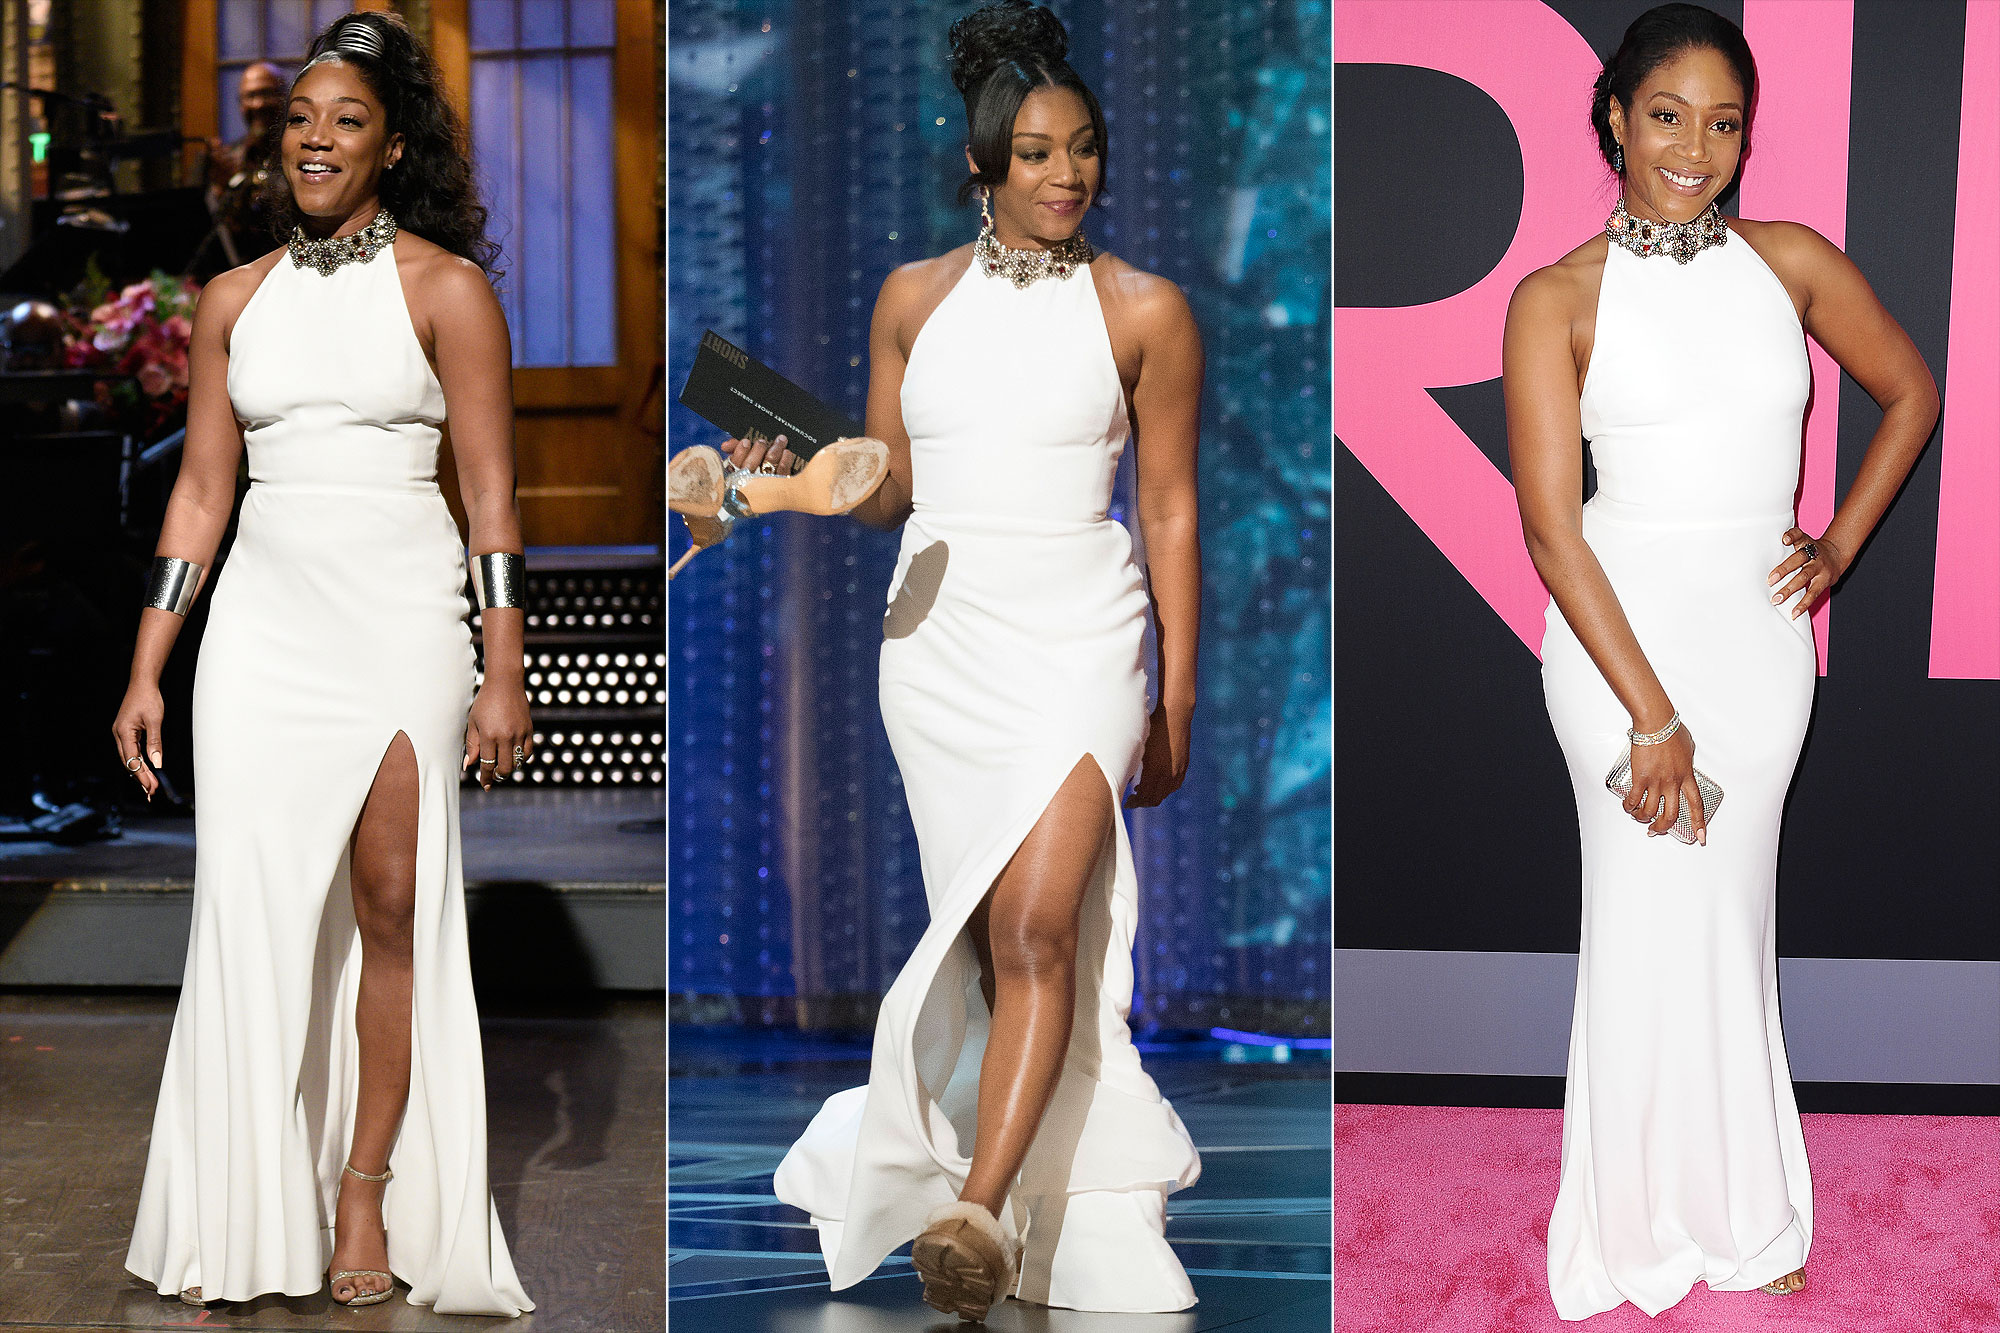 tiffany-haddish-white-dress.jpg